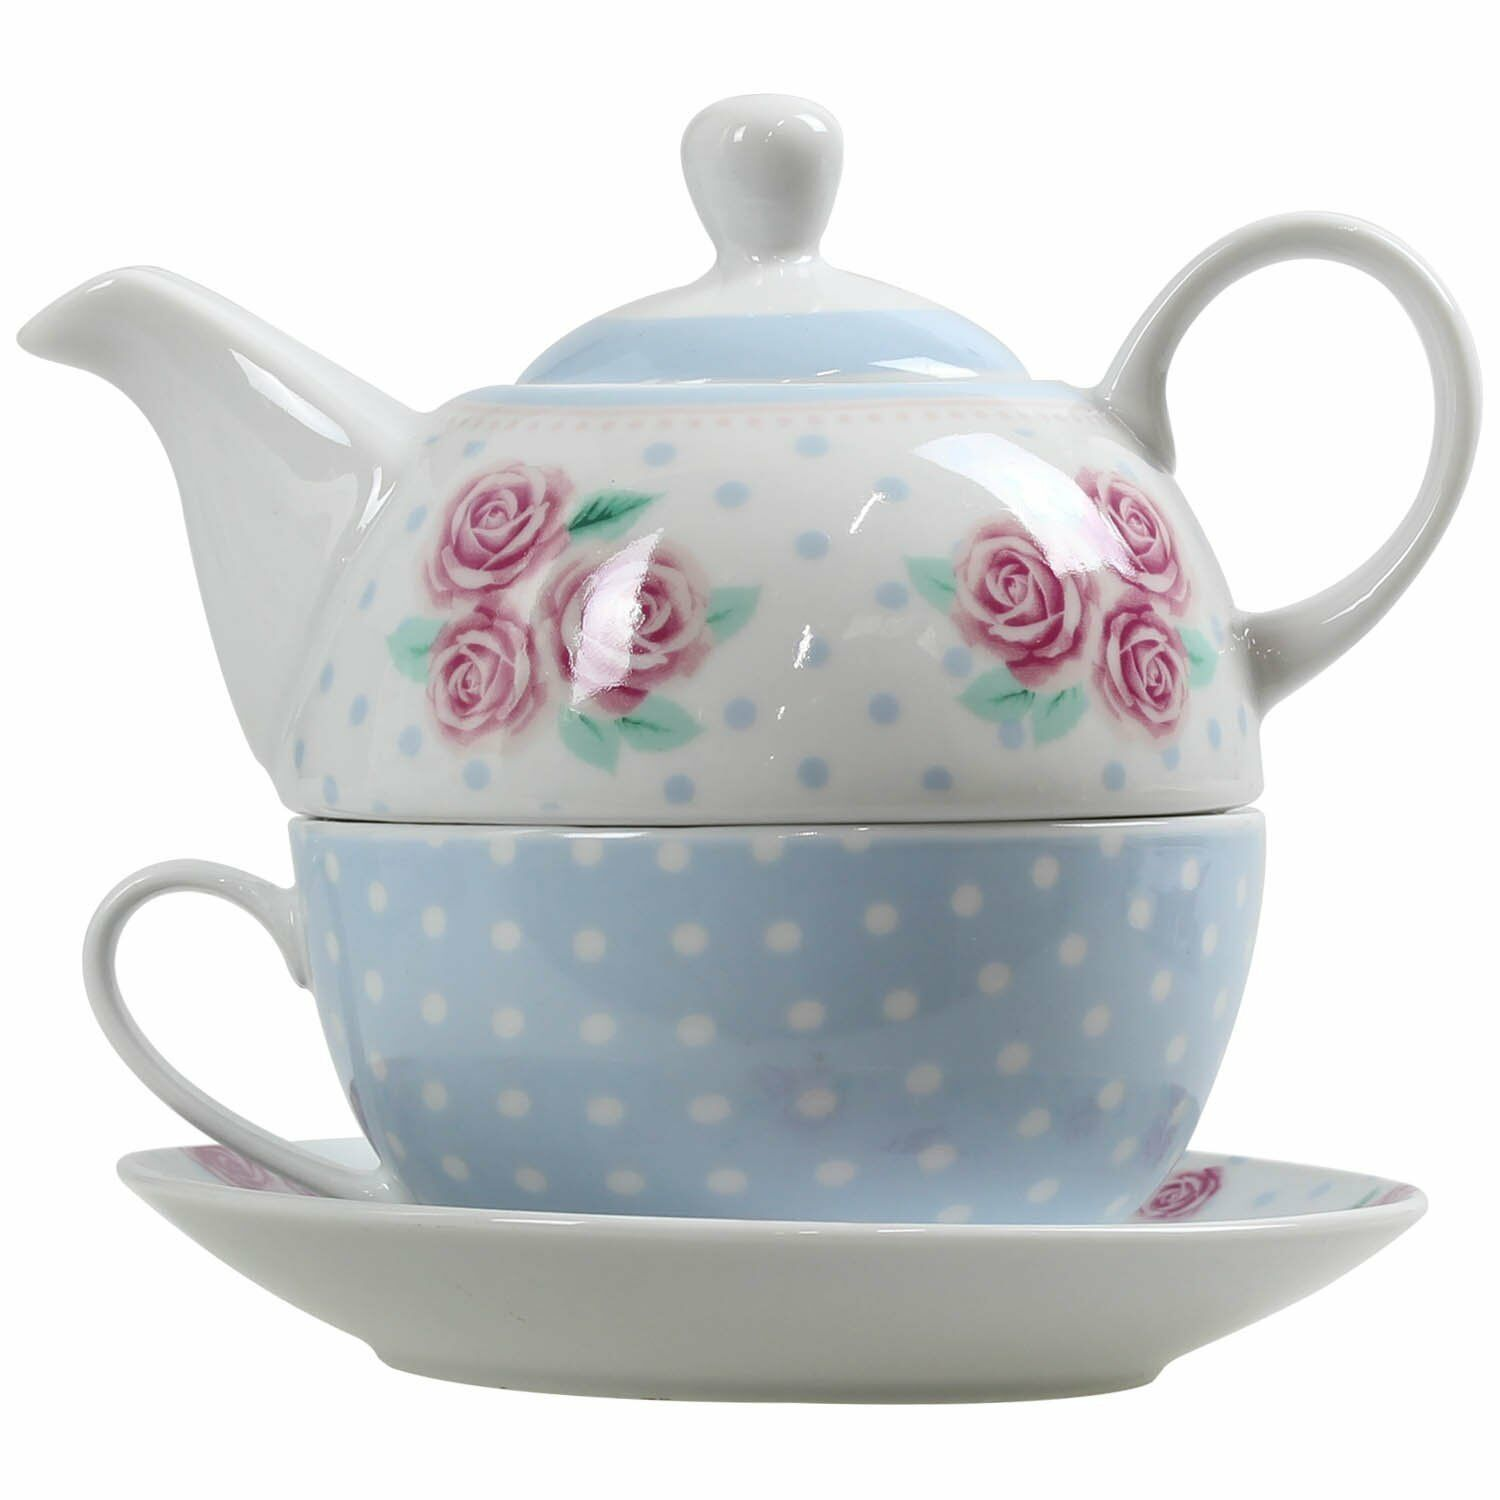 pastel floral polka dot tea for one teapot pot cup and saucer serving set picclick uk. Black Bedroom Furniture Sets. Home Design Ideas